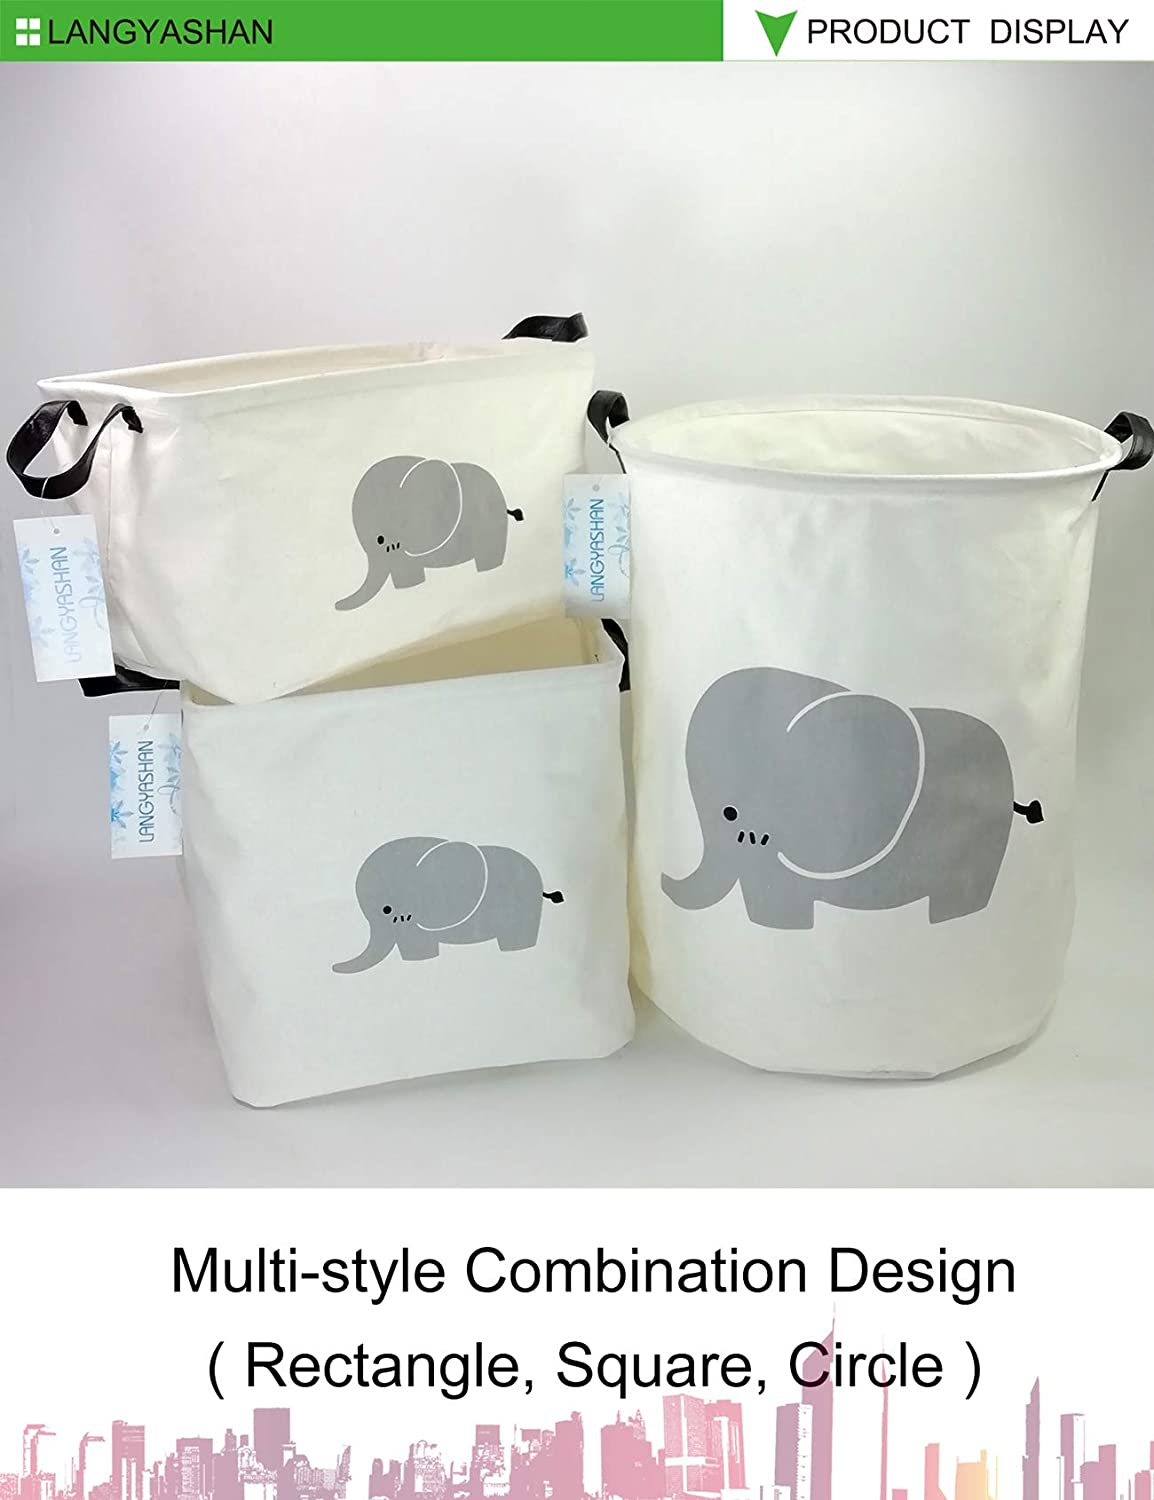 REC Elephant LANGYASHAN Storage Bin,Canvas Fabric Collapsible Organizer Basket for Laundry Hamper,Toy Bins,Gift Baskets Bedroom Clothes,Baby Nursery